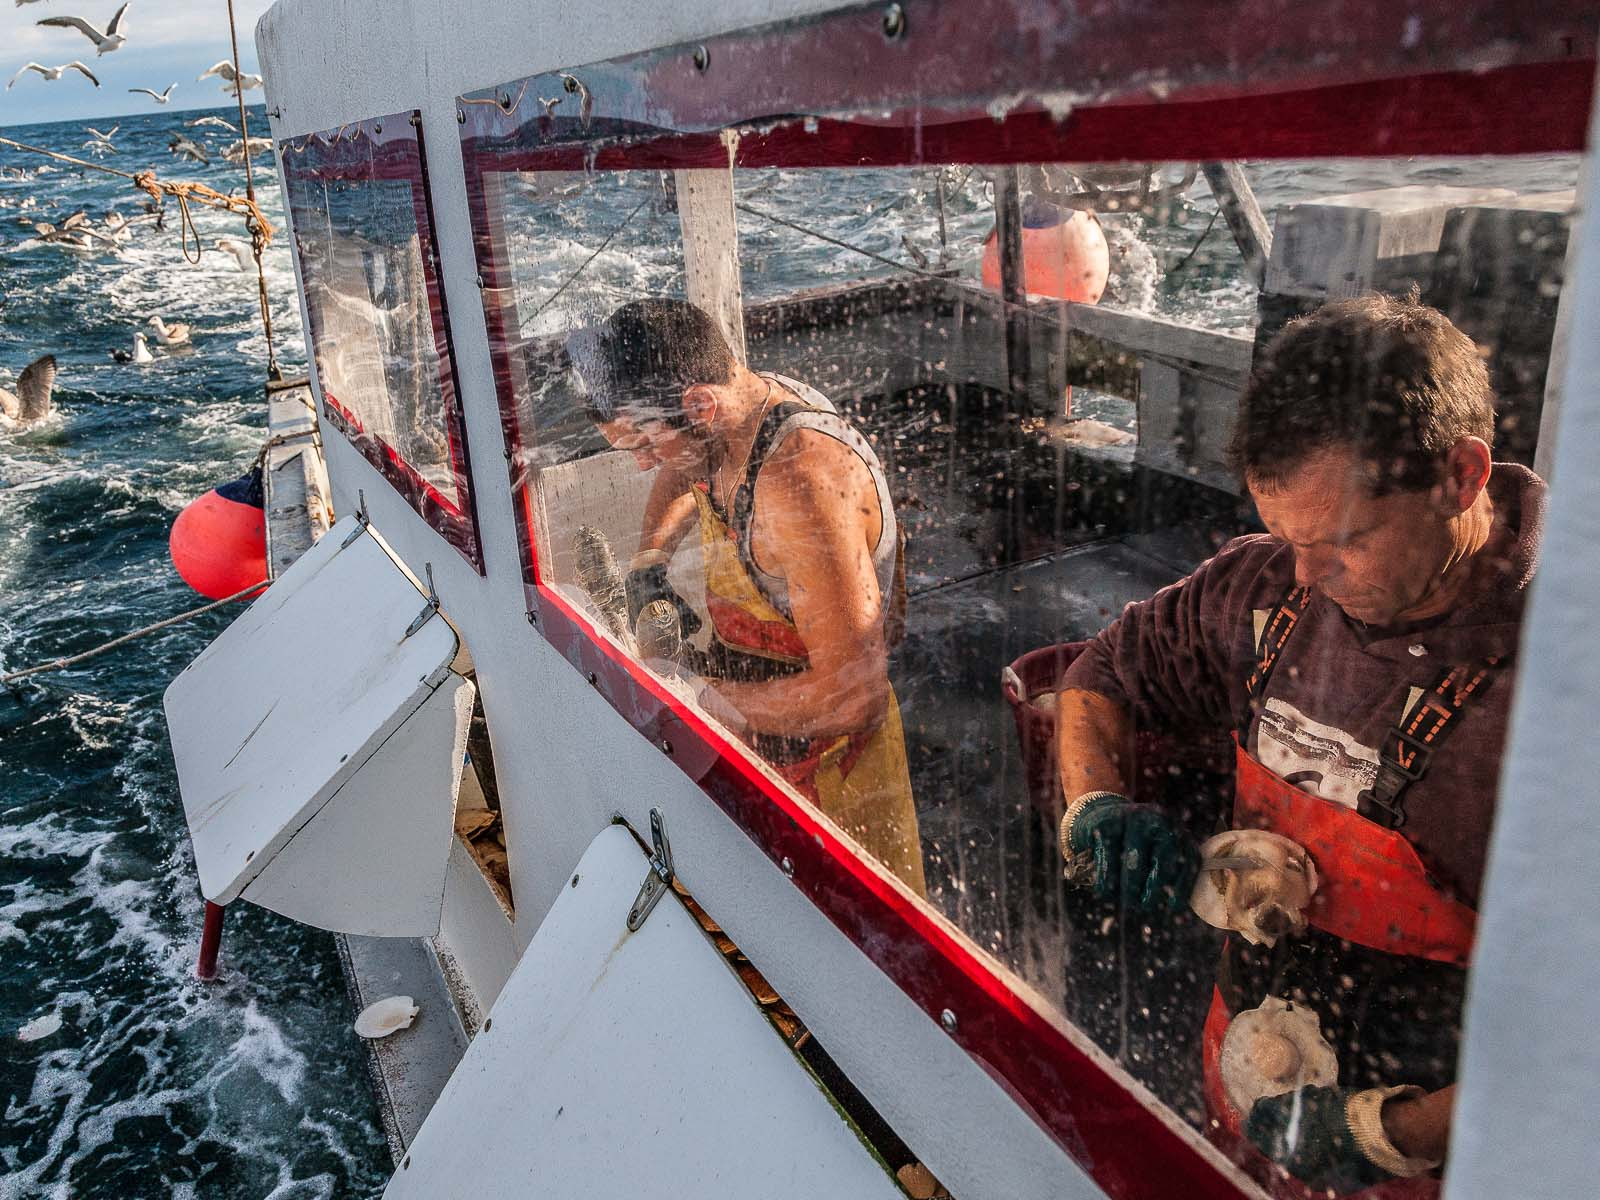 z-commercial-fishing-26